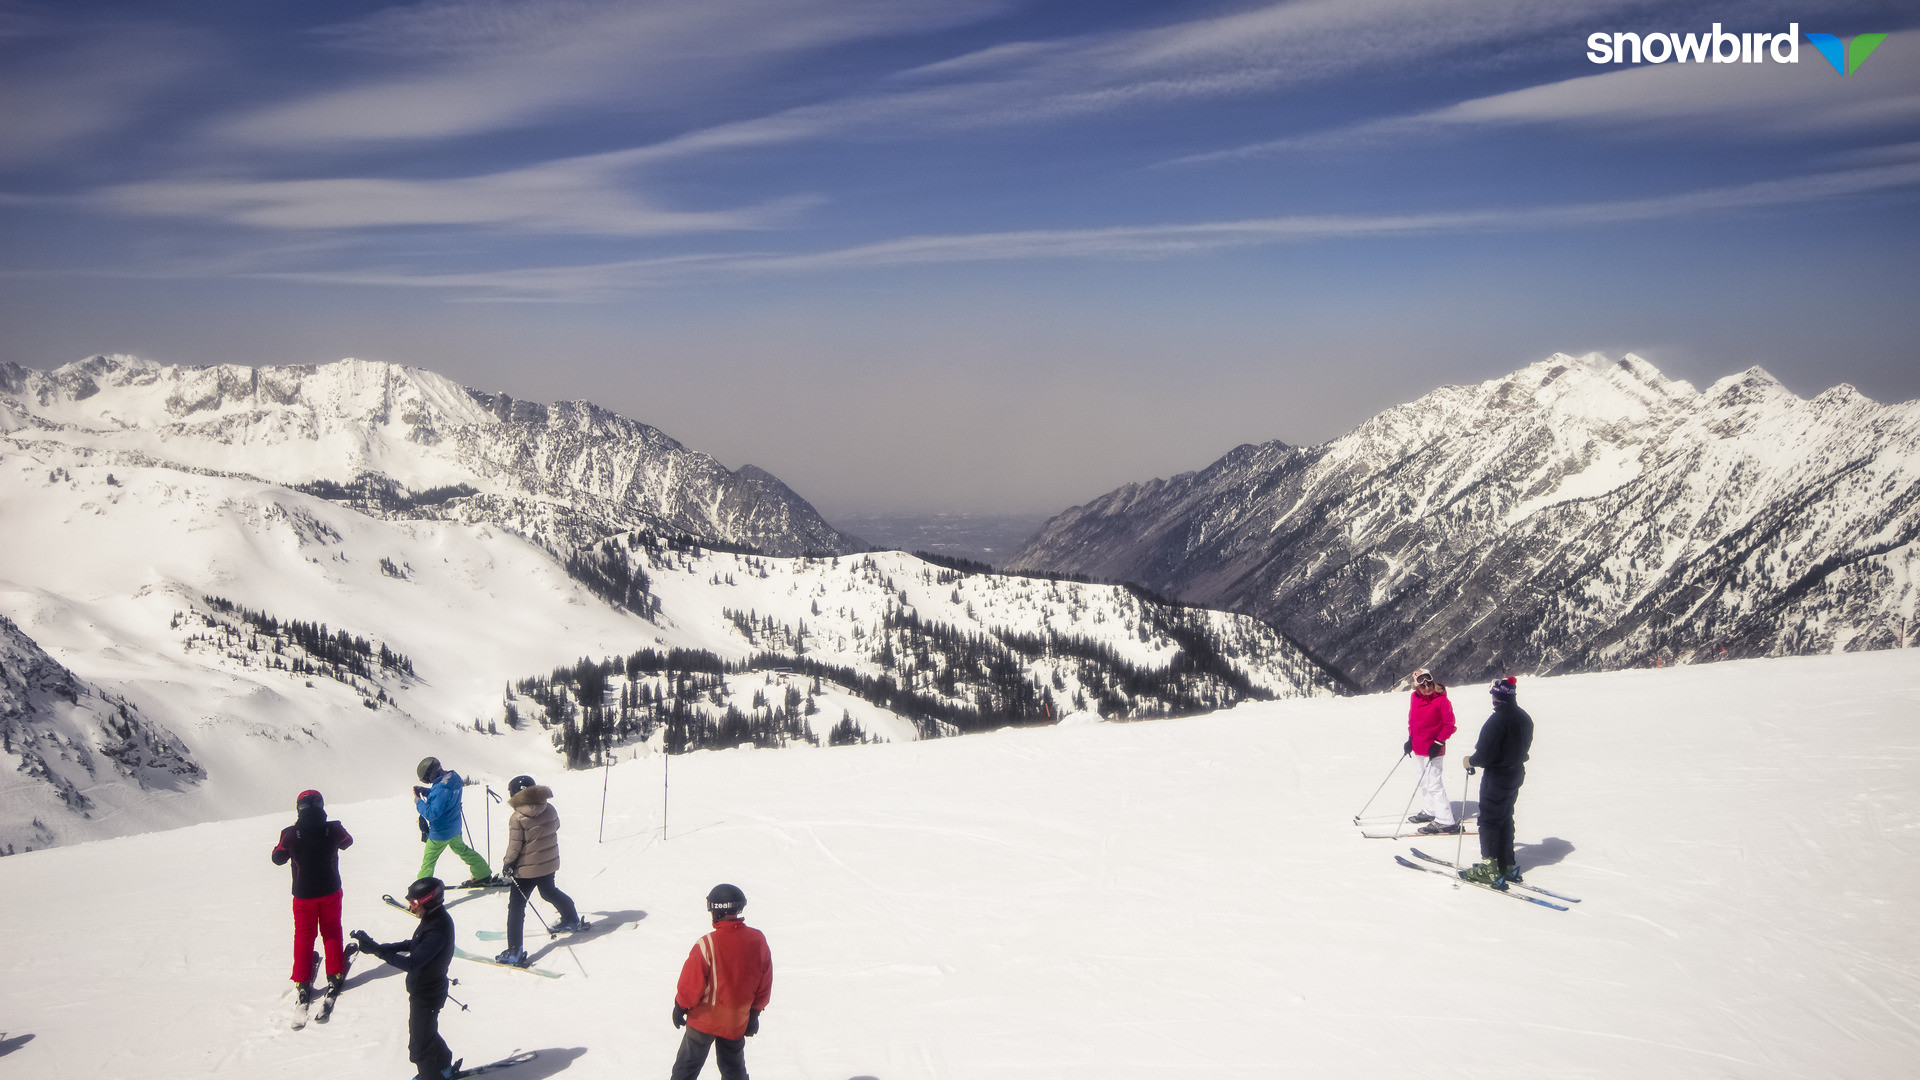 12:15 pm view toward the WNW from Hidden Peak at Snowbird. (http://prismcam.com/demos/snowbird-peaks/)